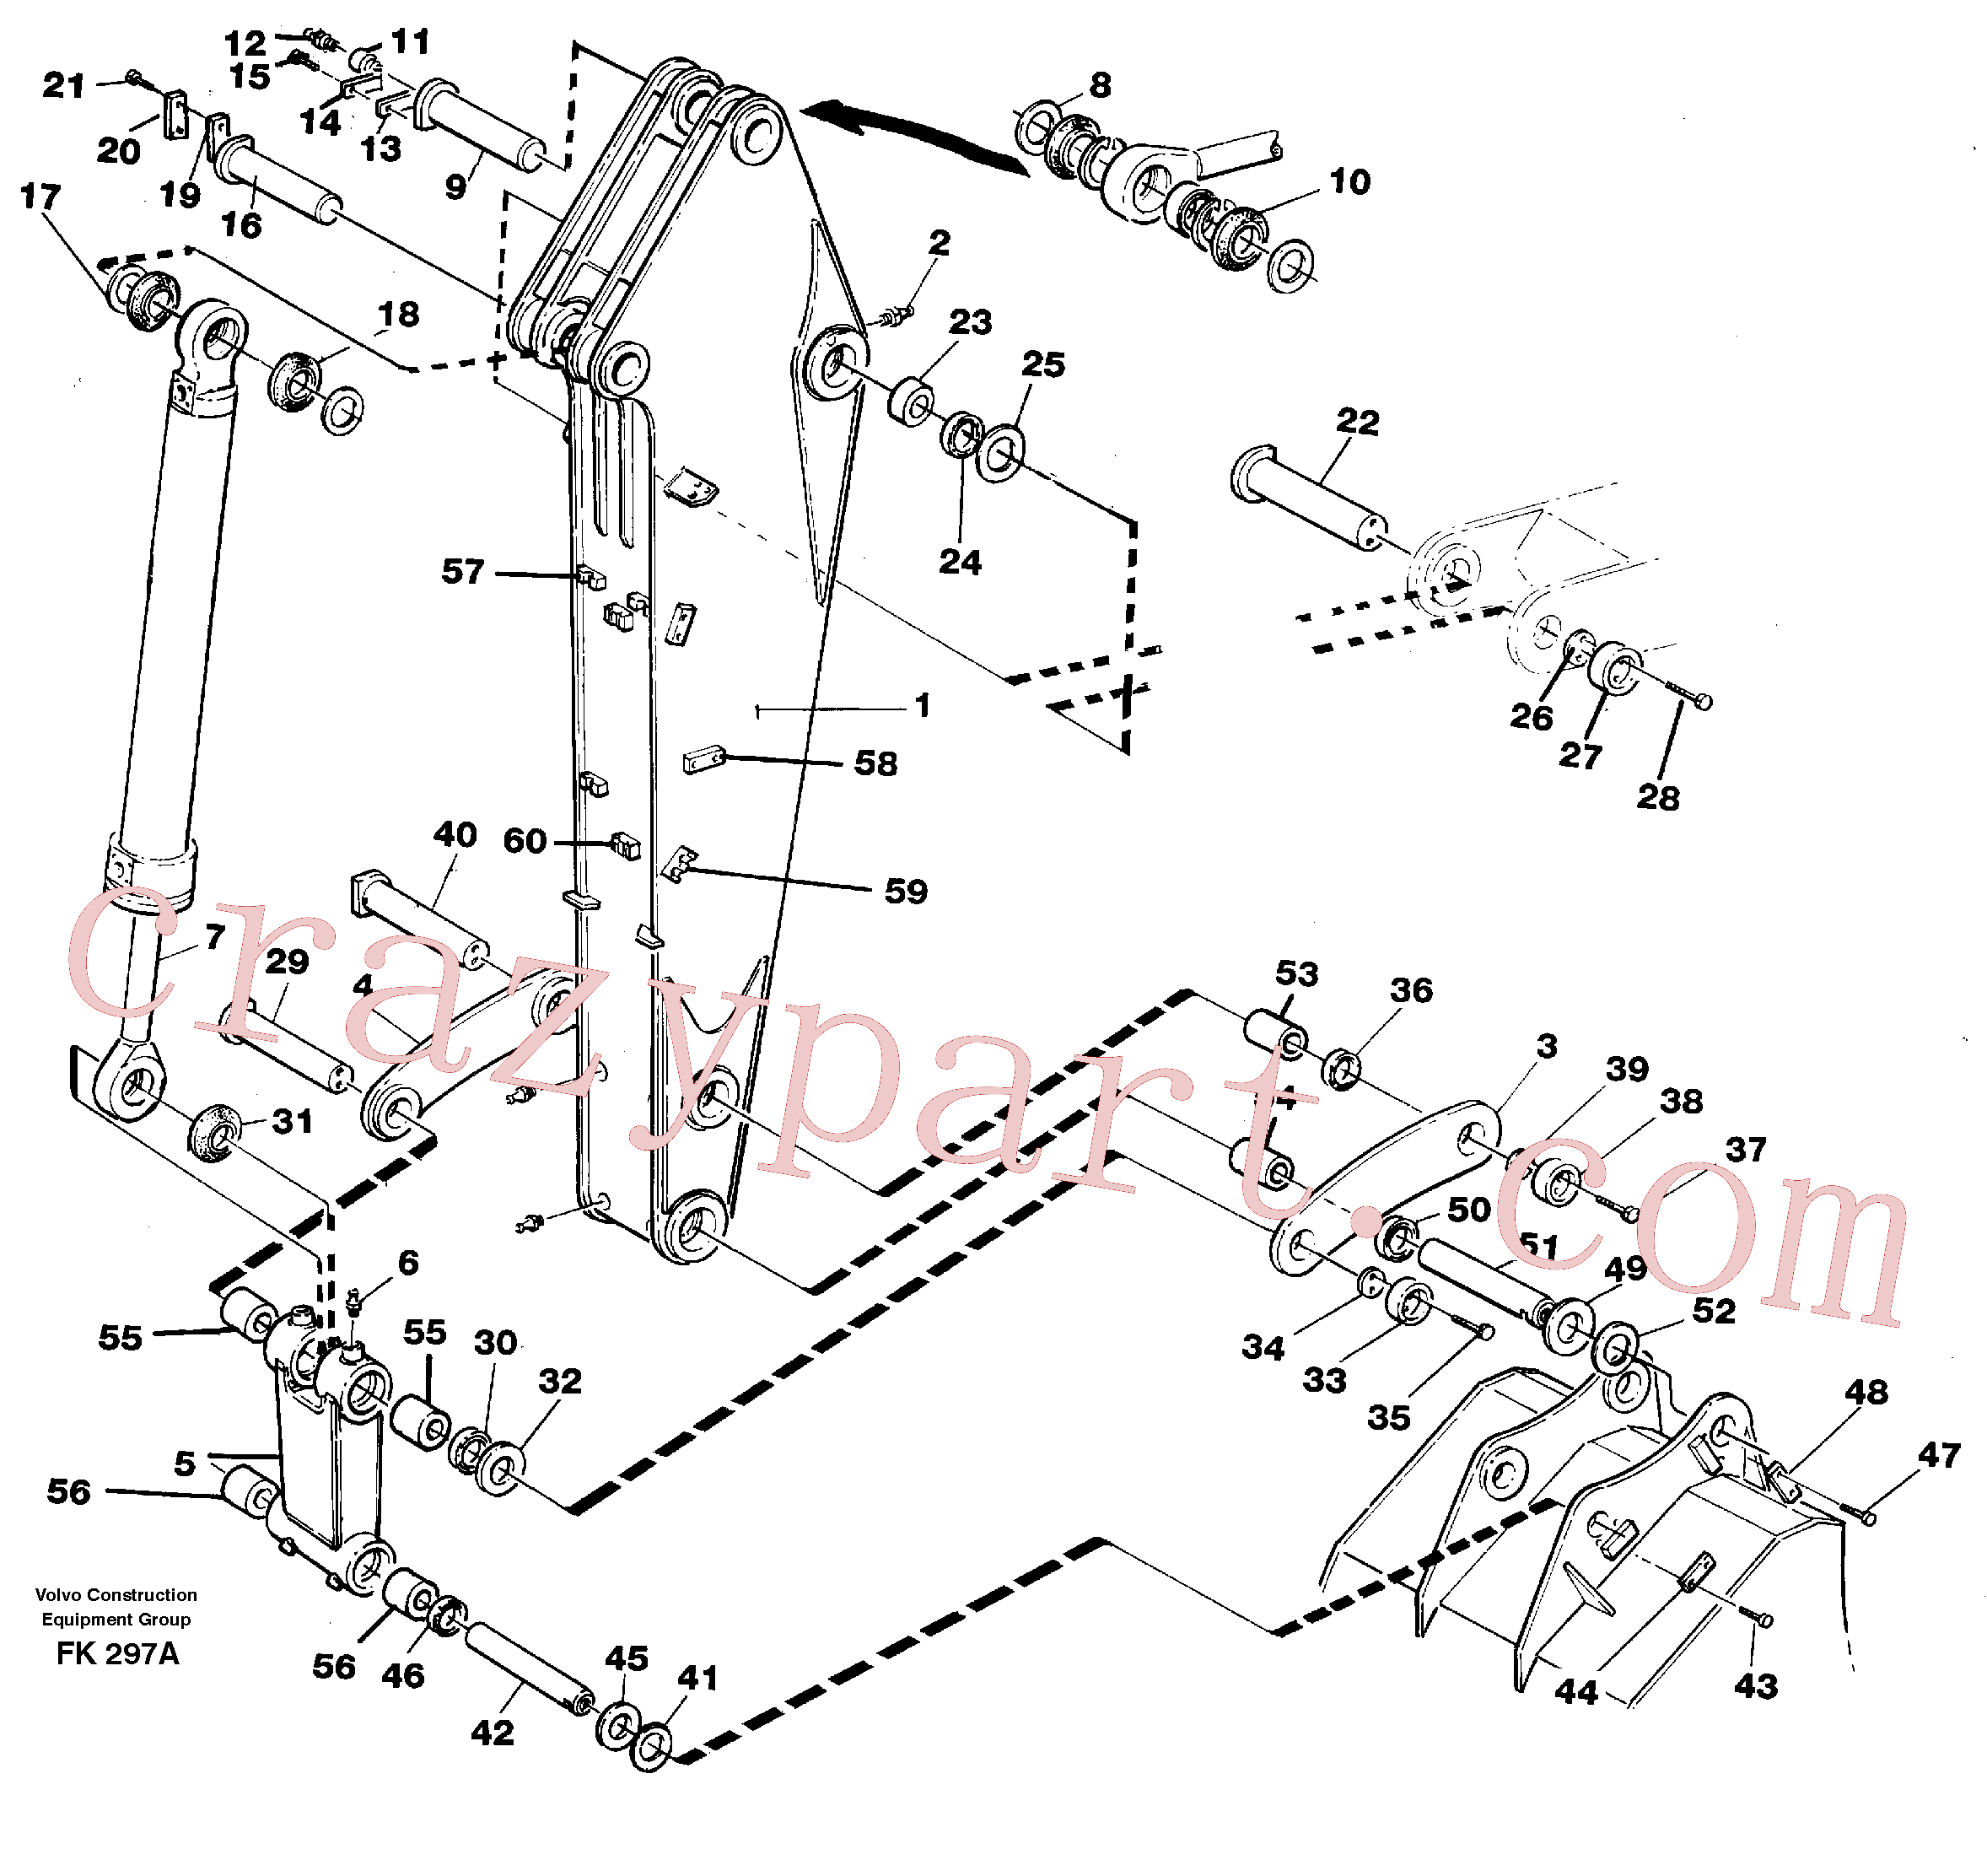 VOE14099893 for Volvo Backhoe dipper arm 2.0m(FK297A assembly)